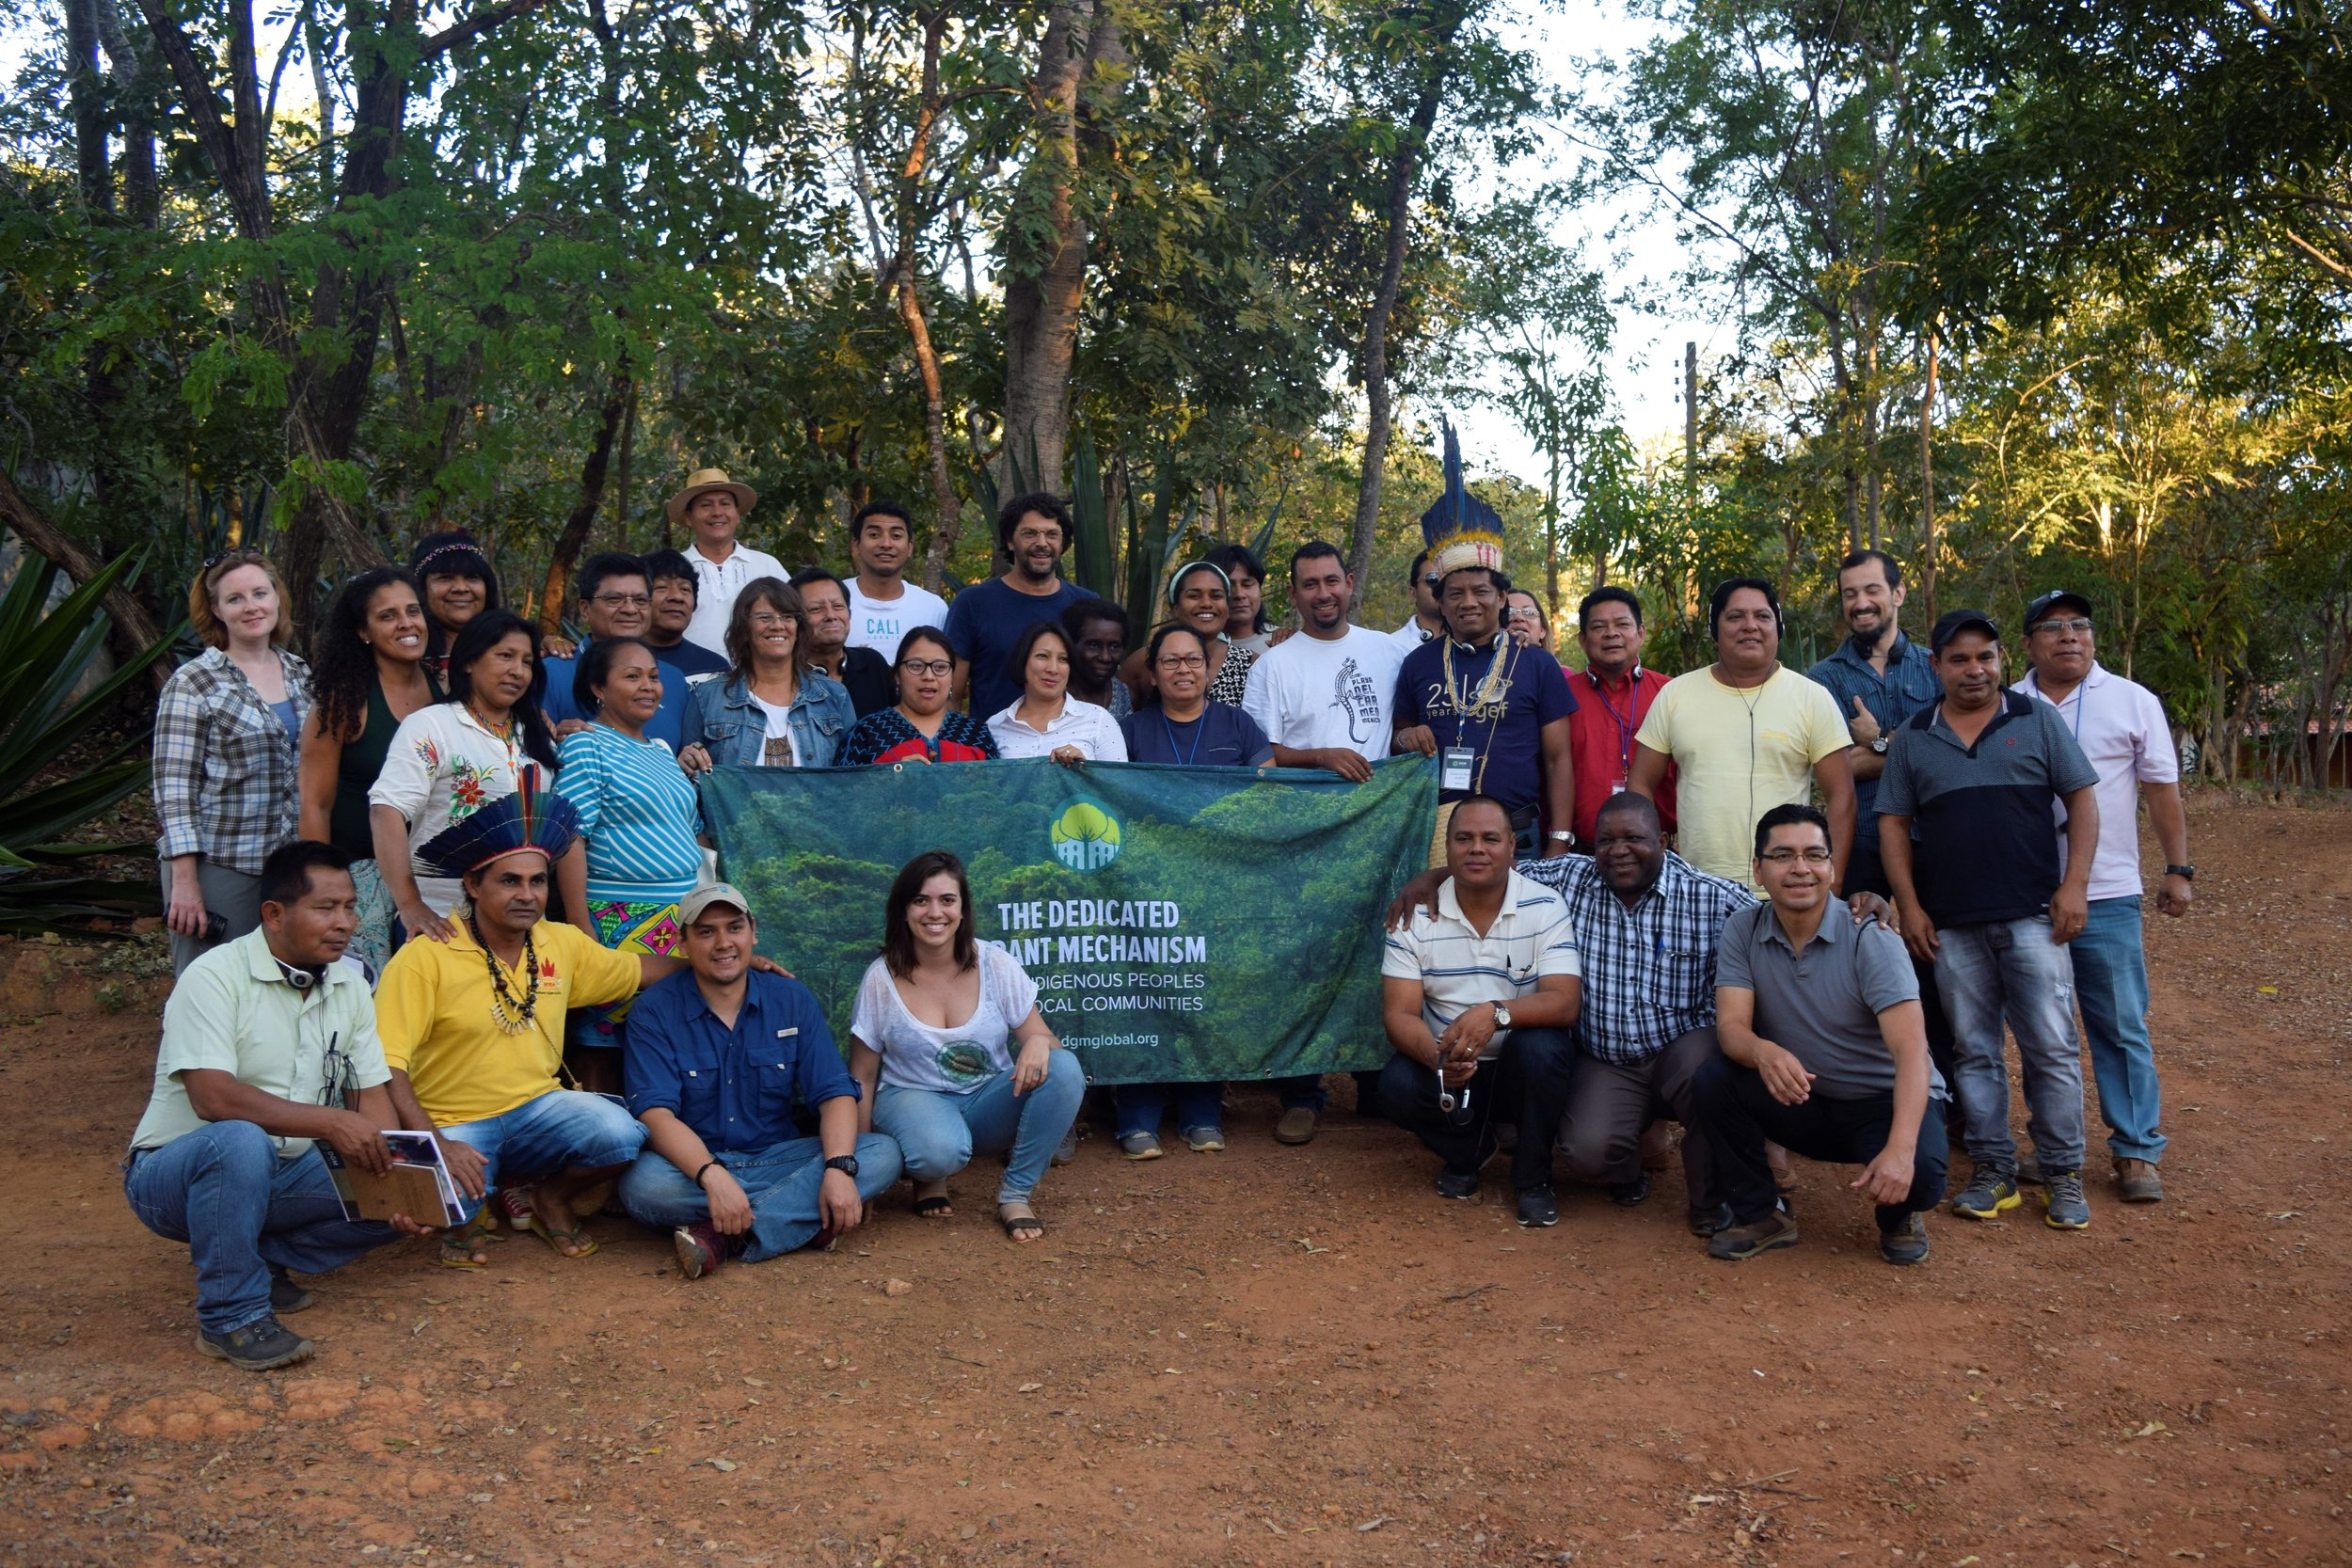 Representatives of indigenous peoples and local communities from all over Latin America gathered in Minas Gerais, Brazil in June 2017 to exchange knowledge and enhance their collaboration in the region. Photo Credit: DGM Brazil